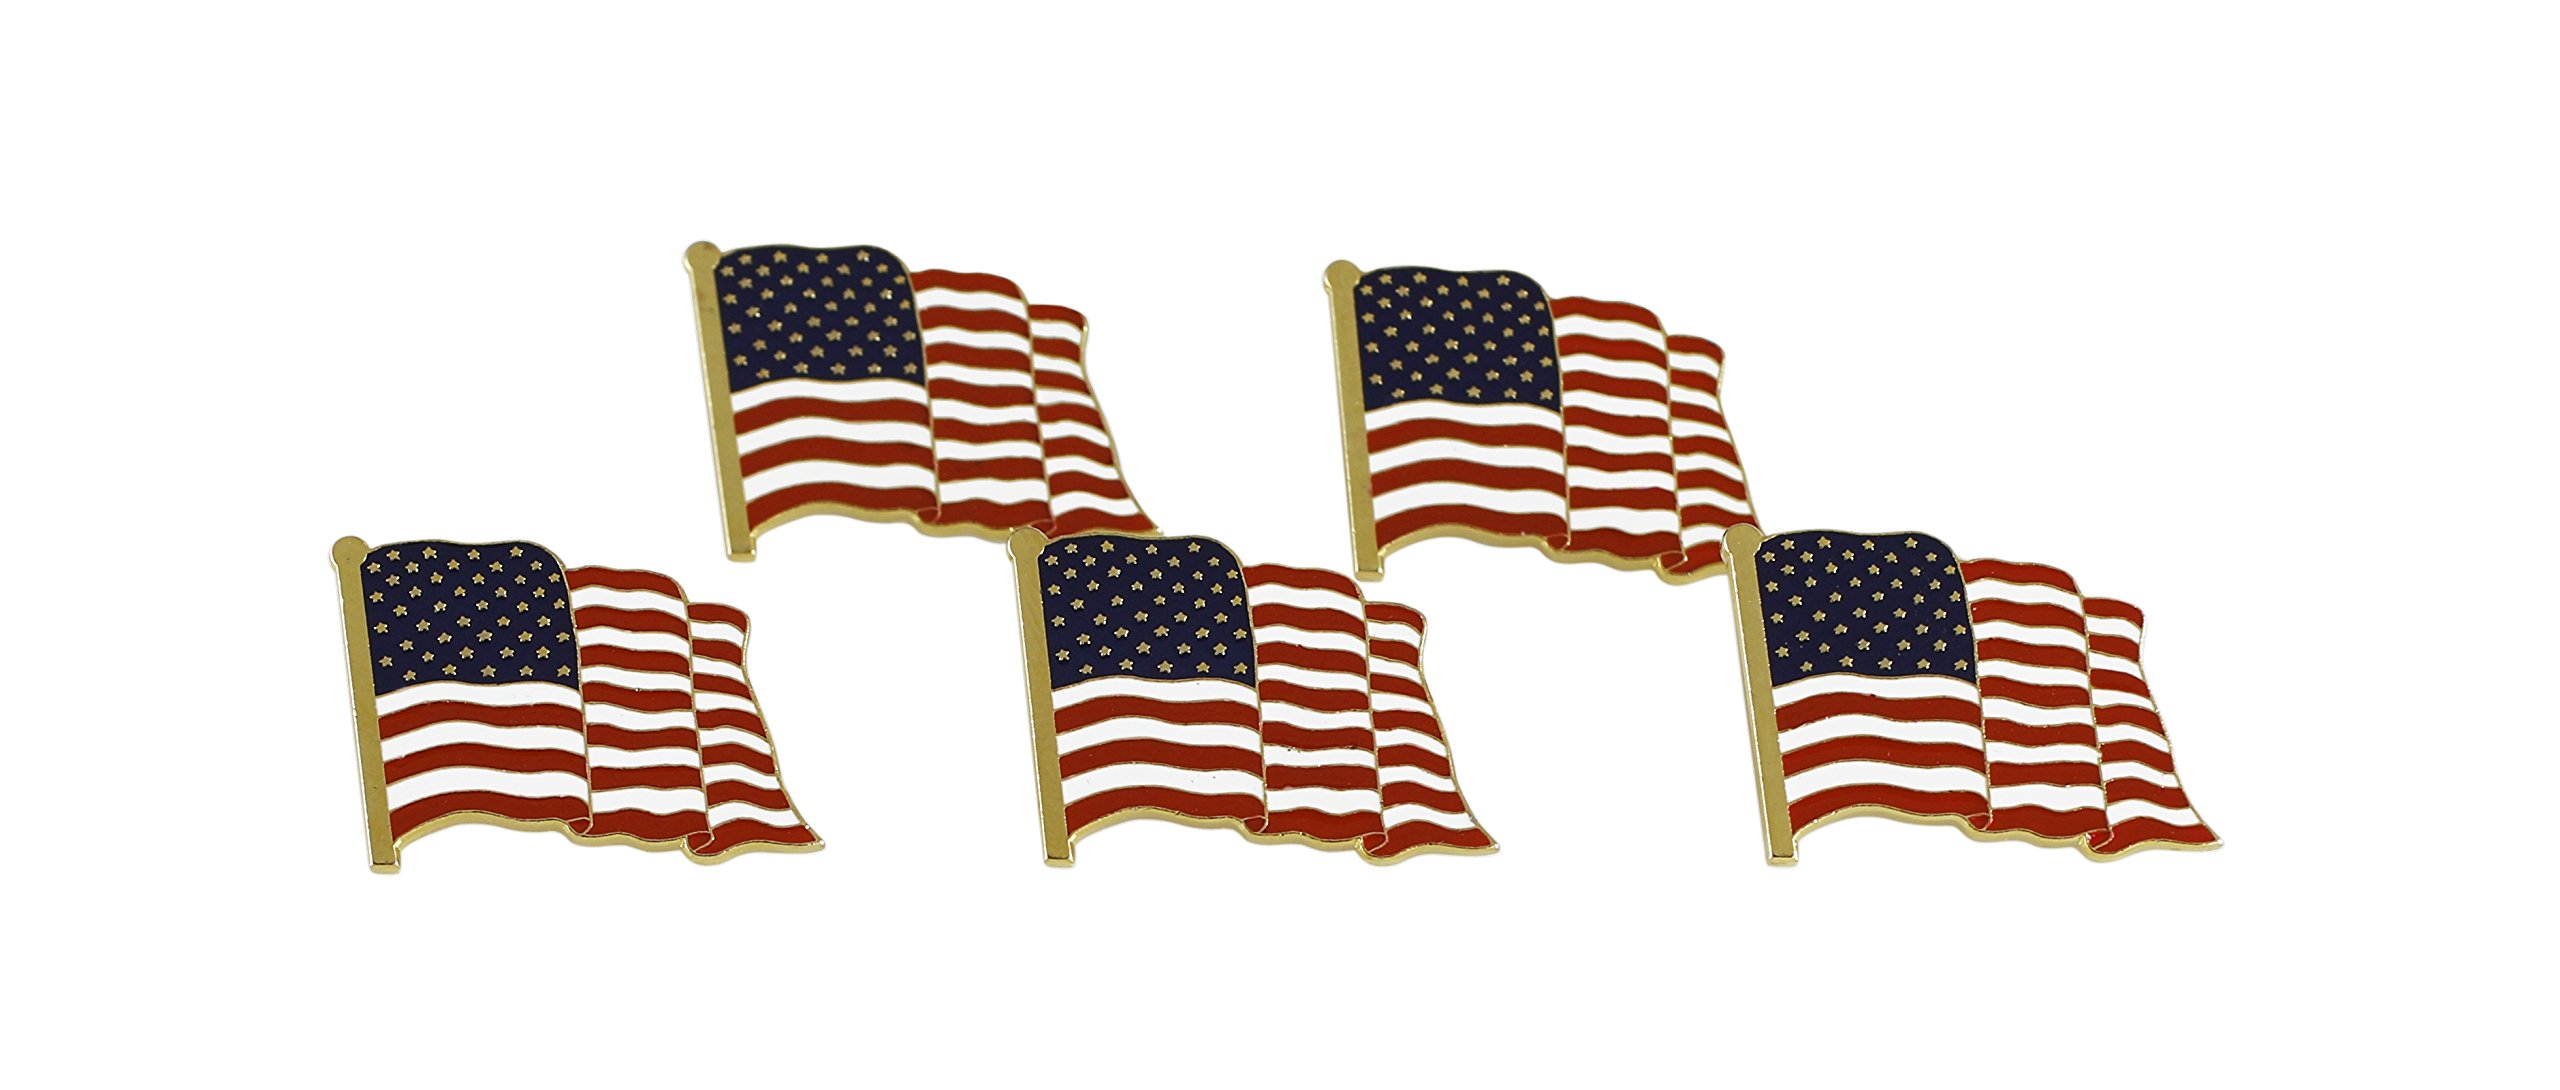 American Flag Lapel Pin Proudly Made in USA (5 Pack) by Forge